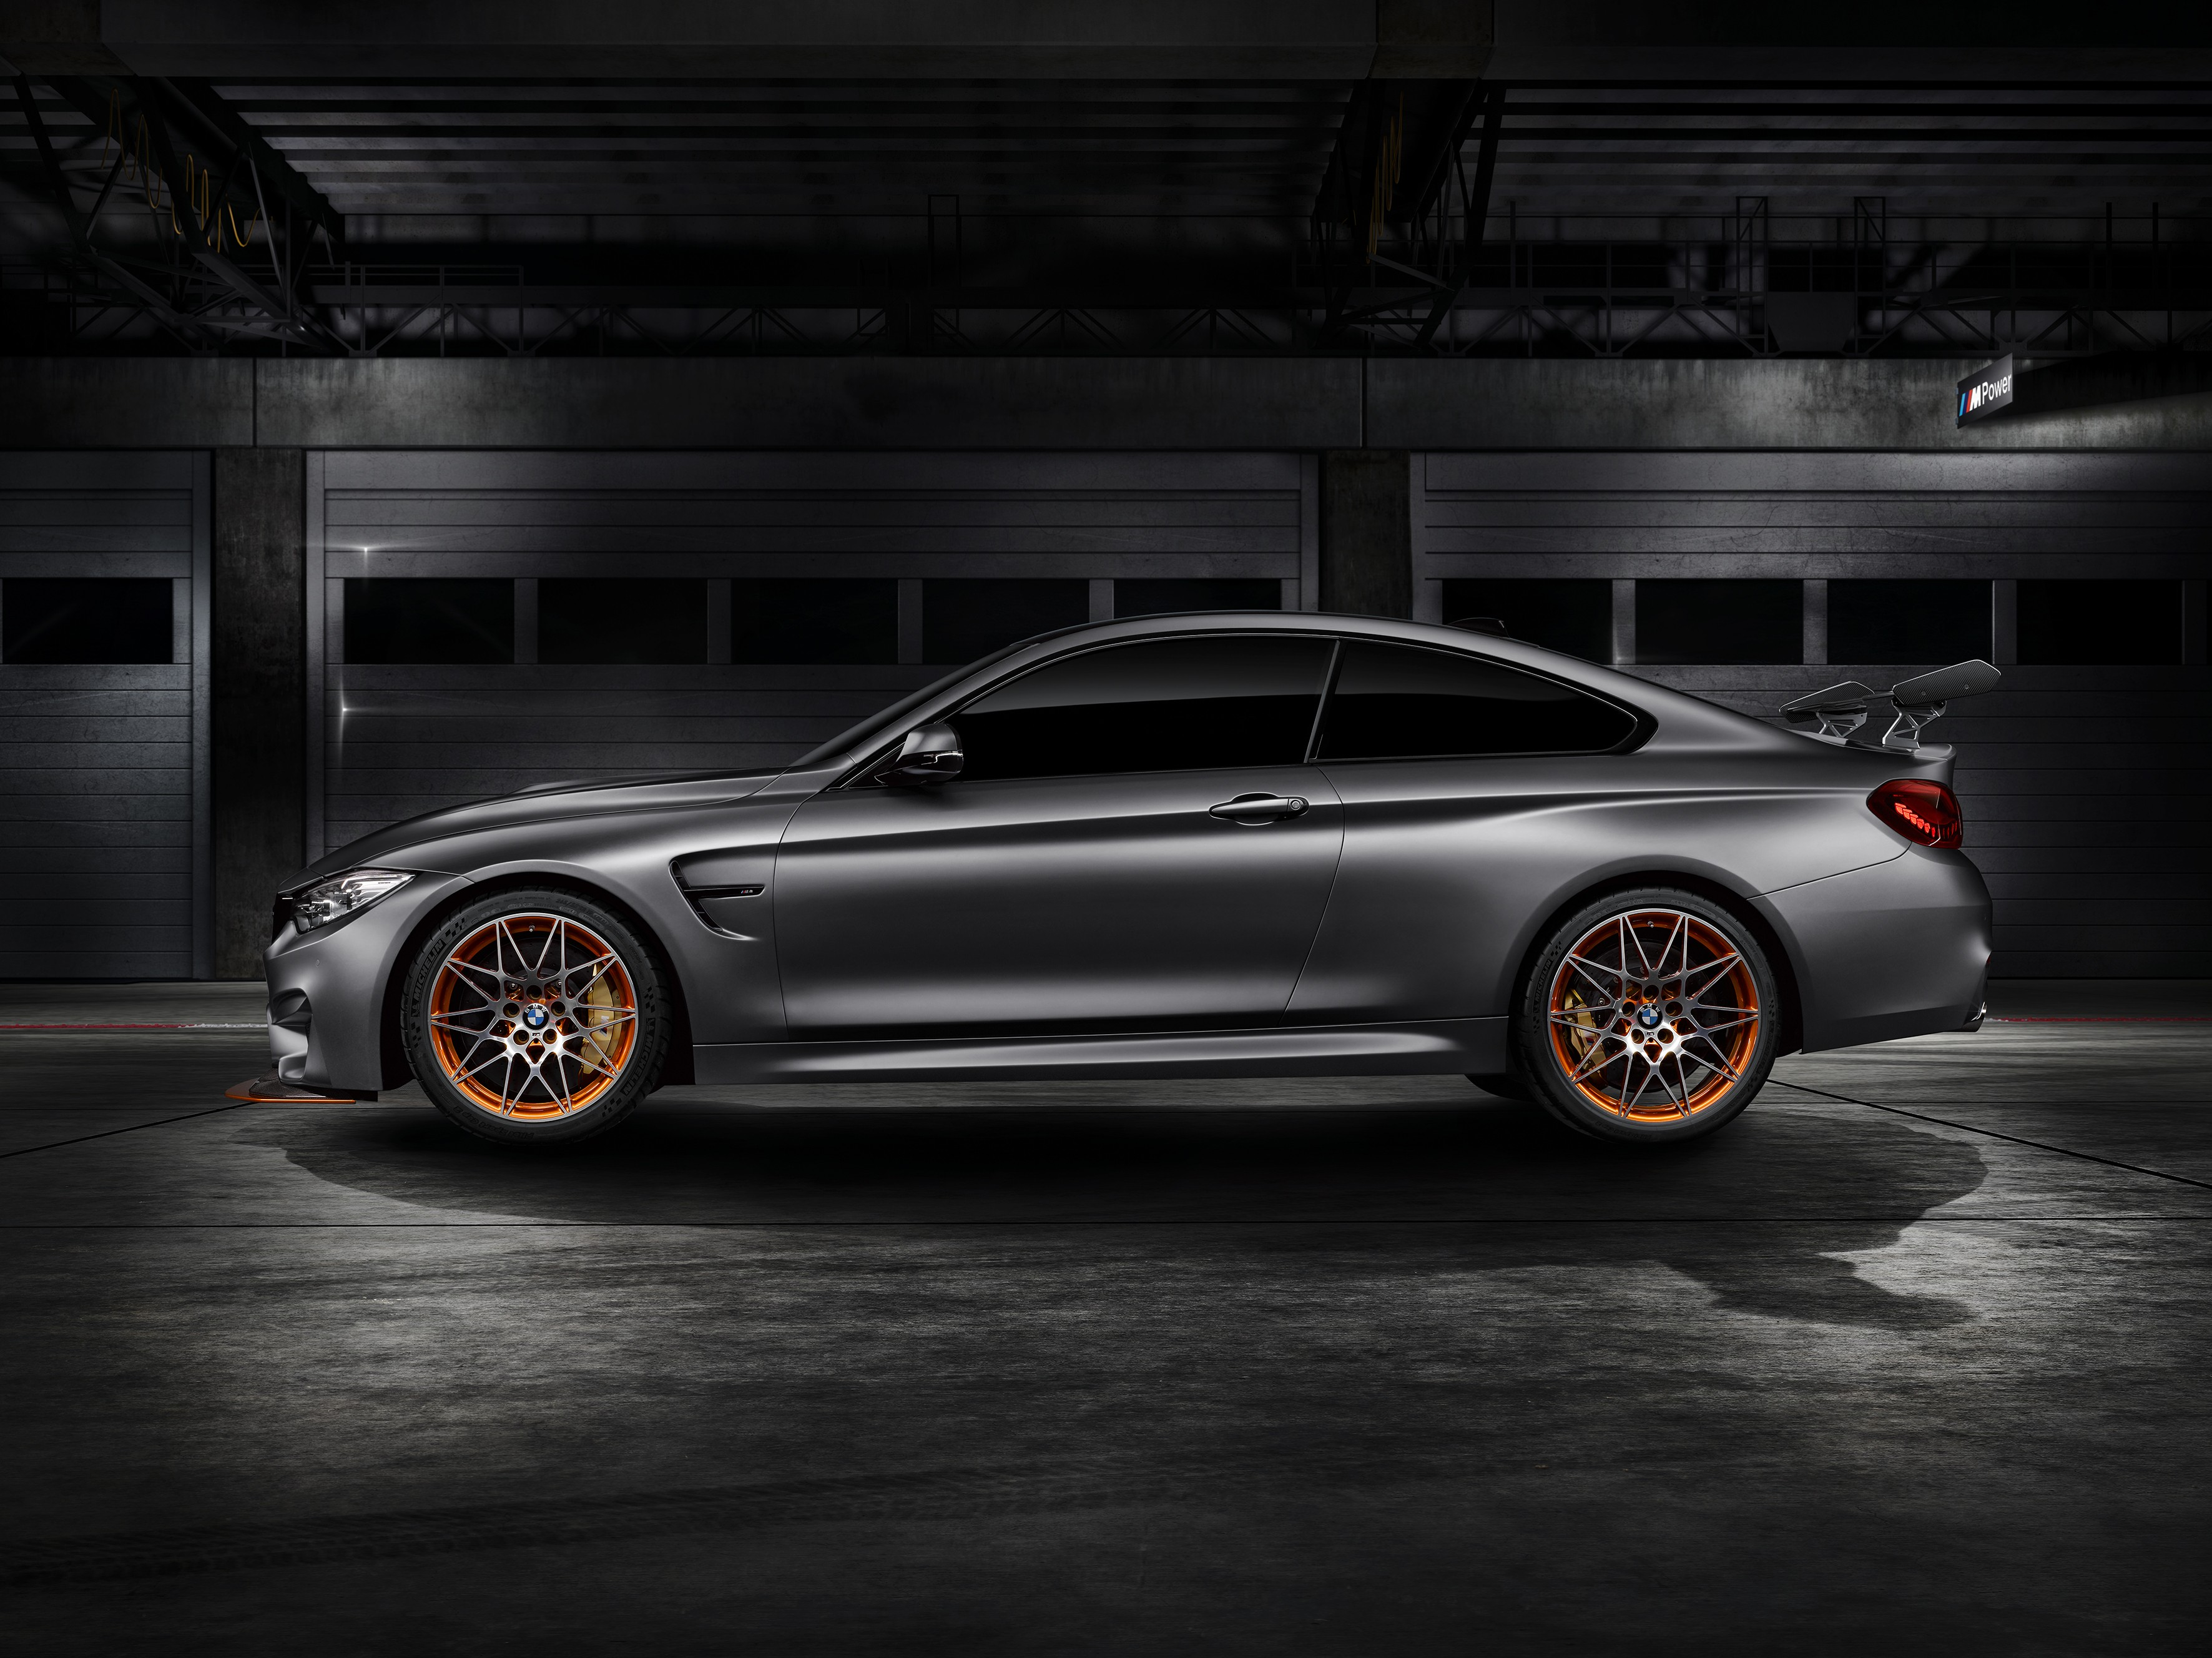 bmw-concept-m4-gts-makes-world-debut-at-pebble-beach-with-oled-lighting-photo-gallery_10